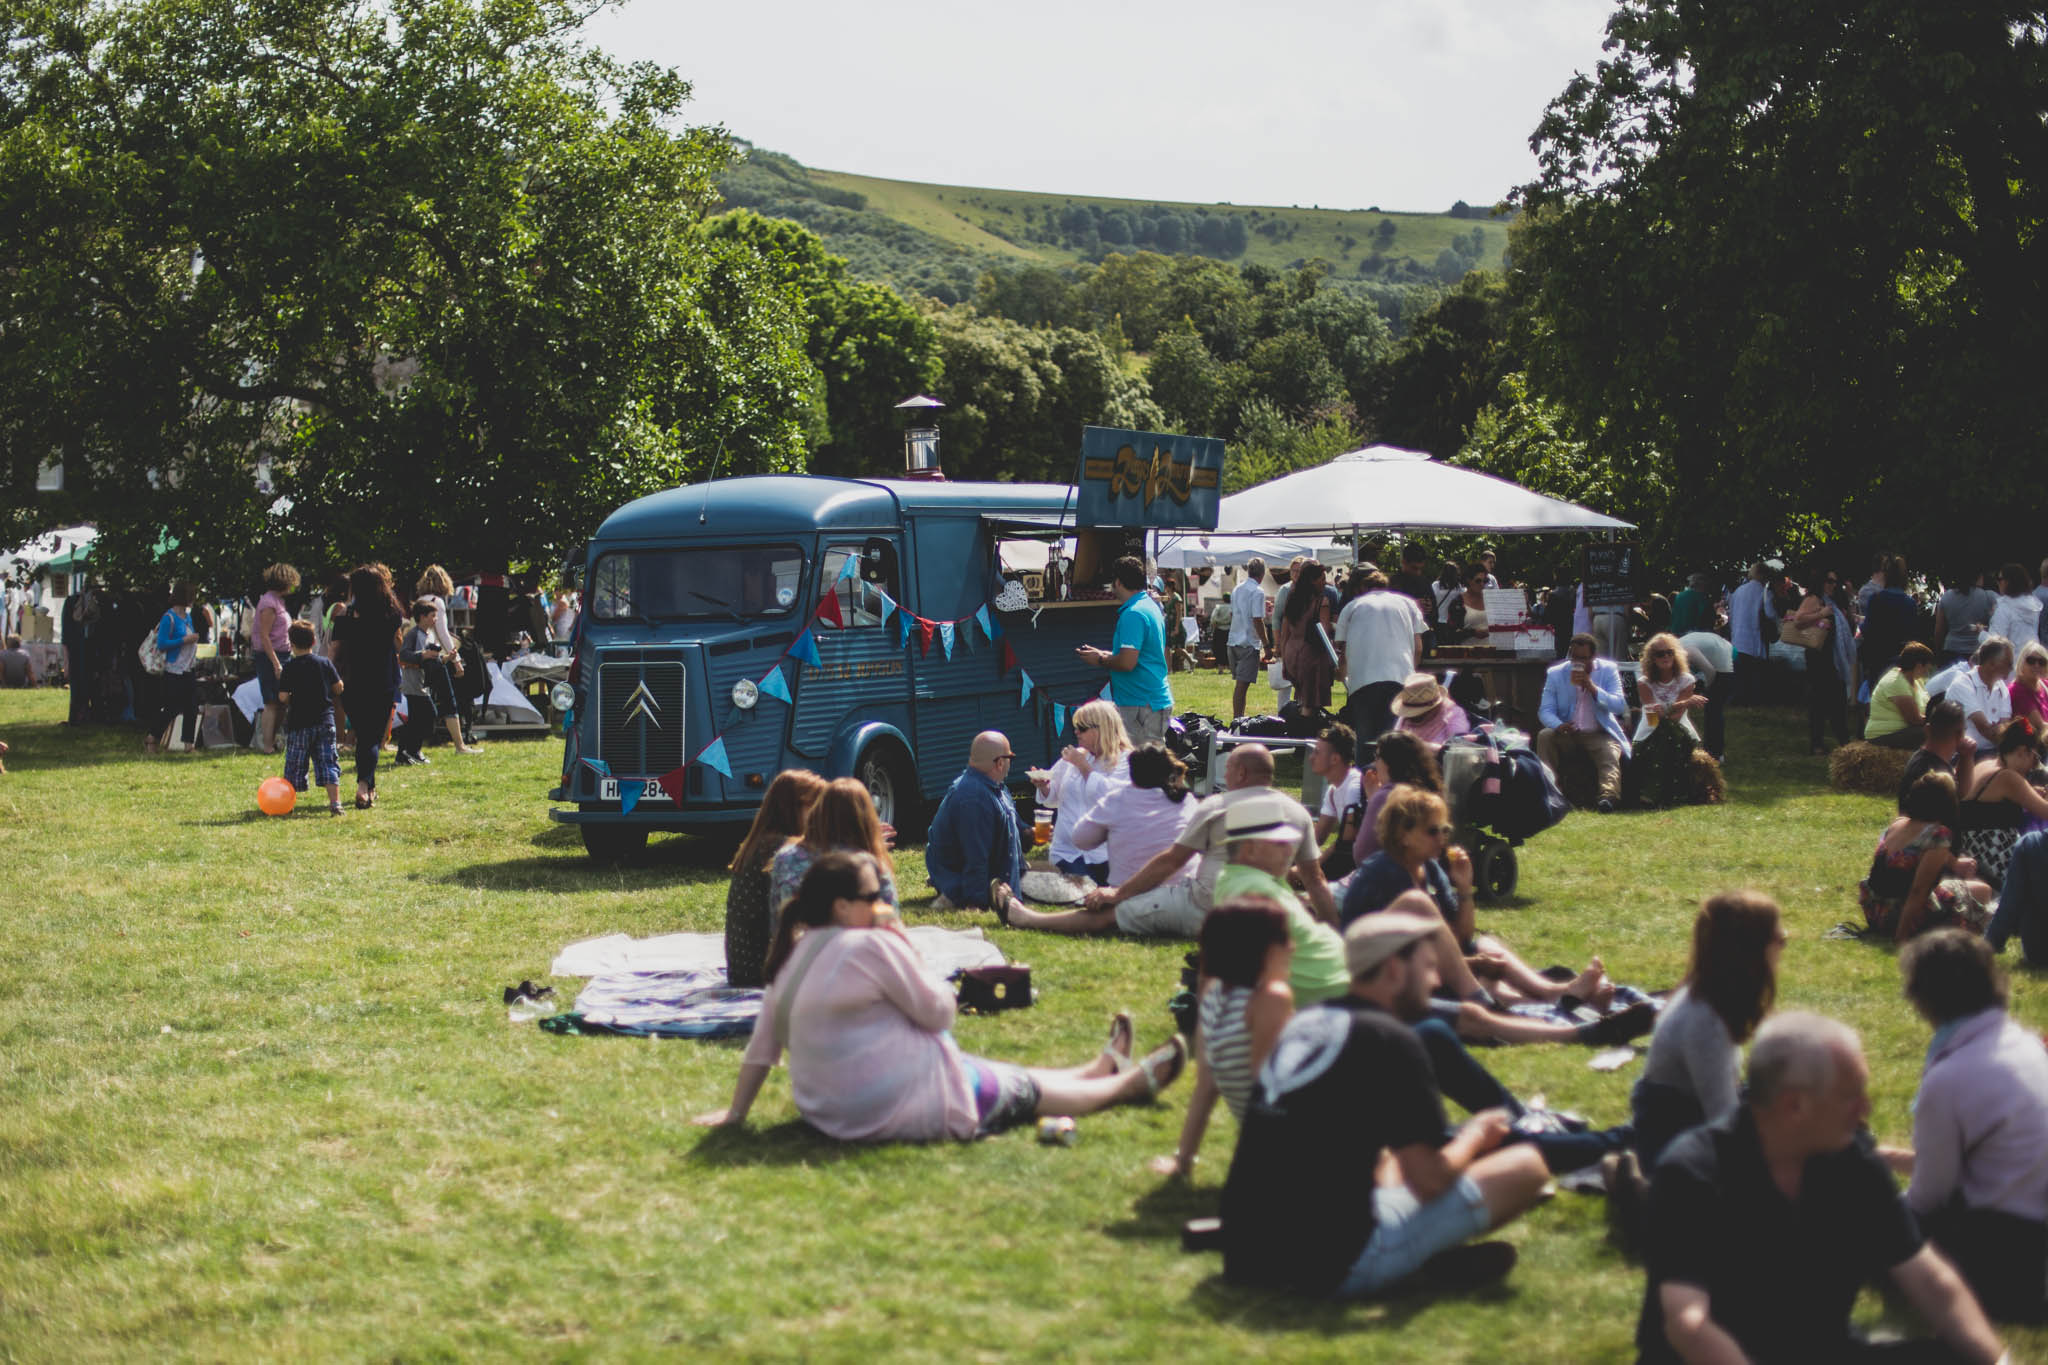 BRIQUE will be pitching @ Firle Vintage Fair - 12-13 August 2017